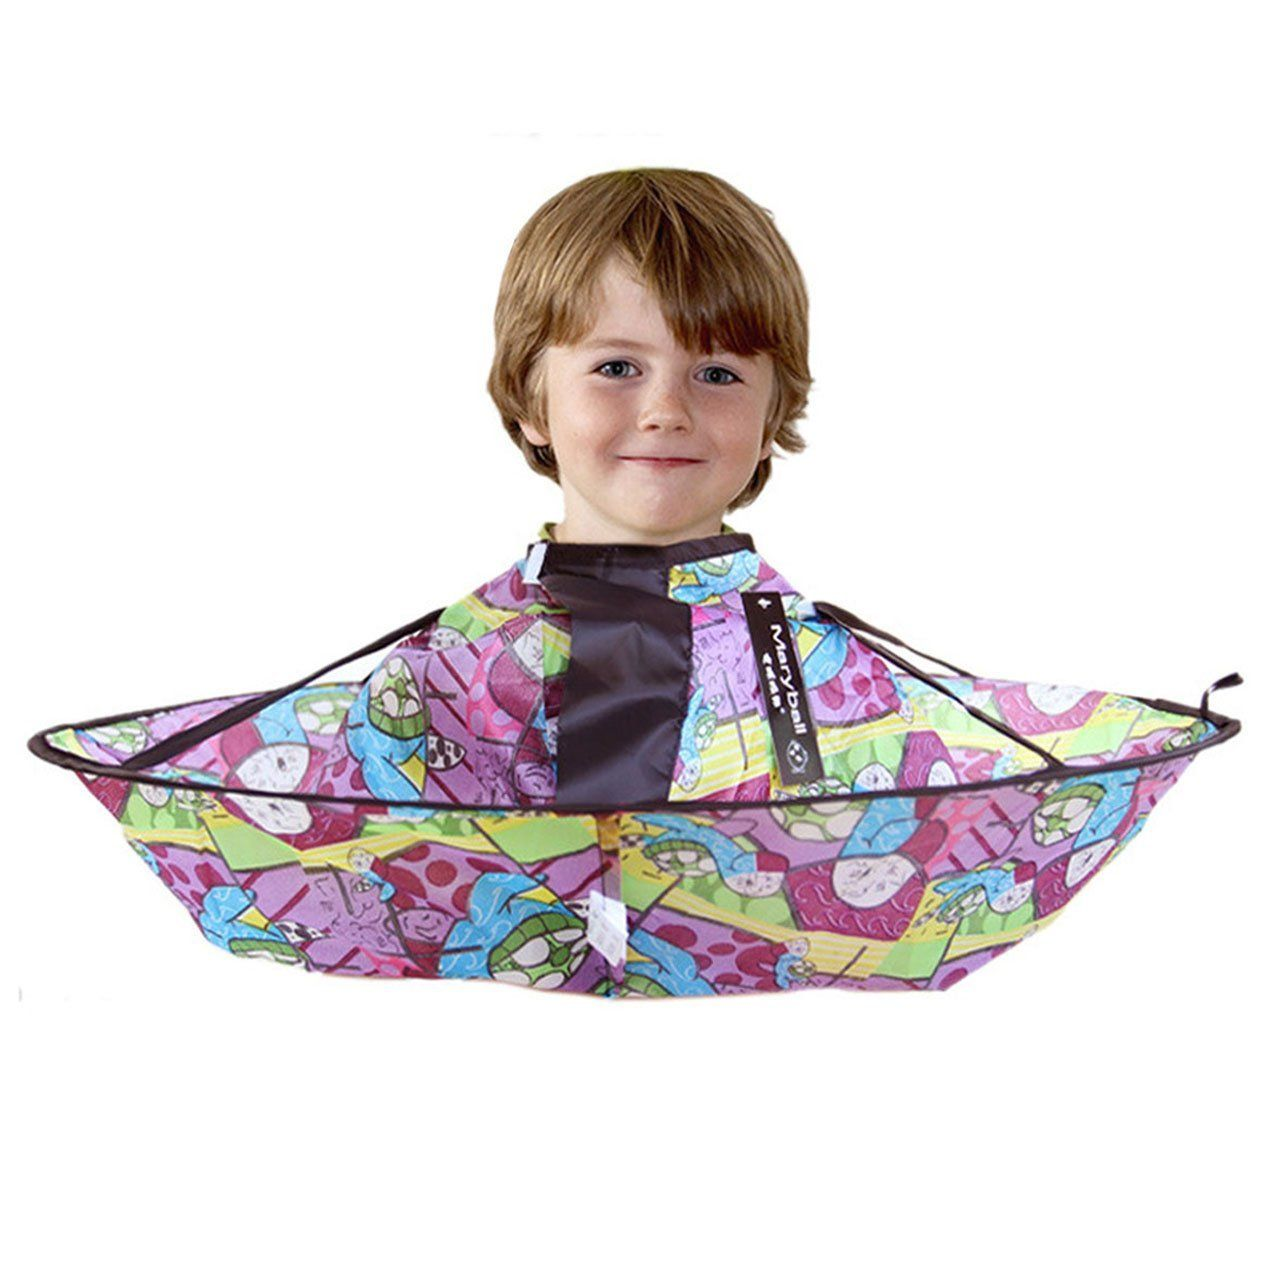 Ccbeauty Children Barber Cape For Kid Salon Haircut Umbrella Catcher Hairdresser Styling And A Waterproof 2 Beauty